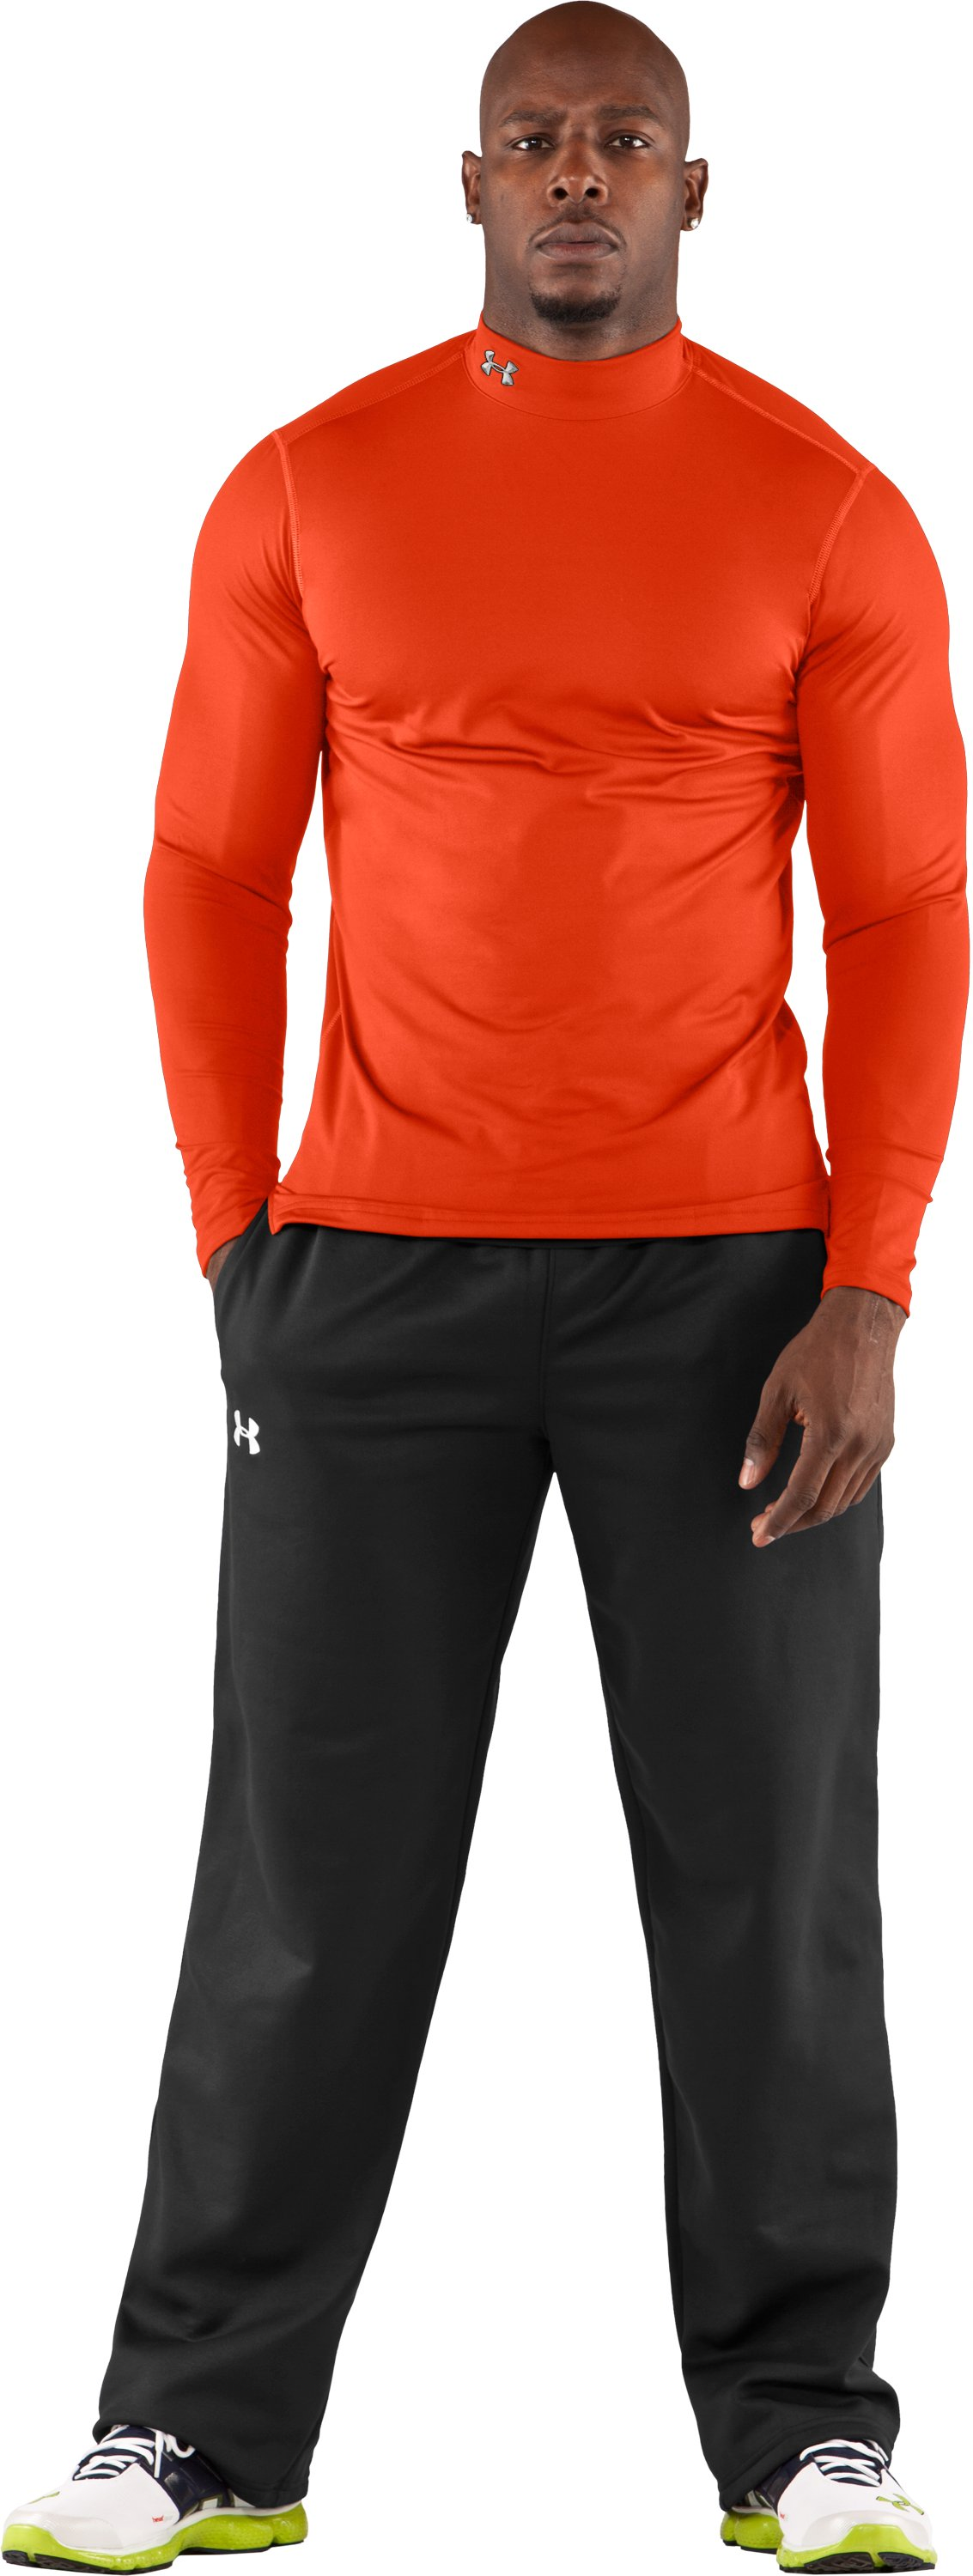 Men's ColdGear® Fitted Long Sleeve Mock, Explosive